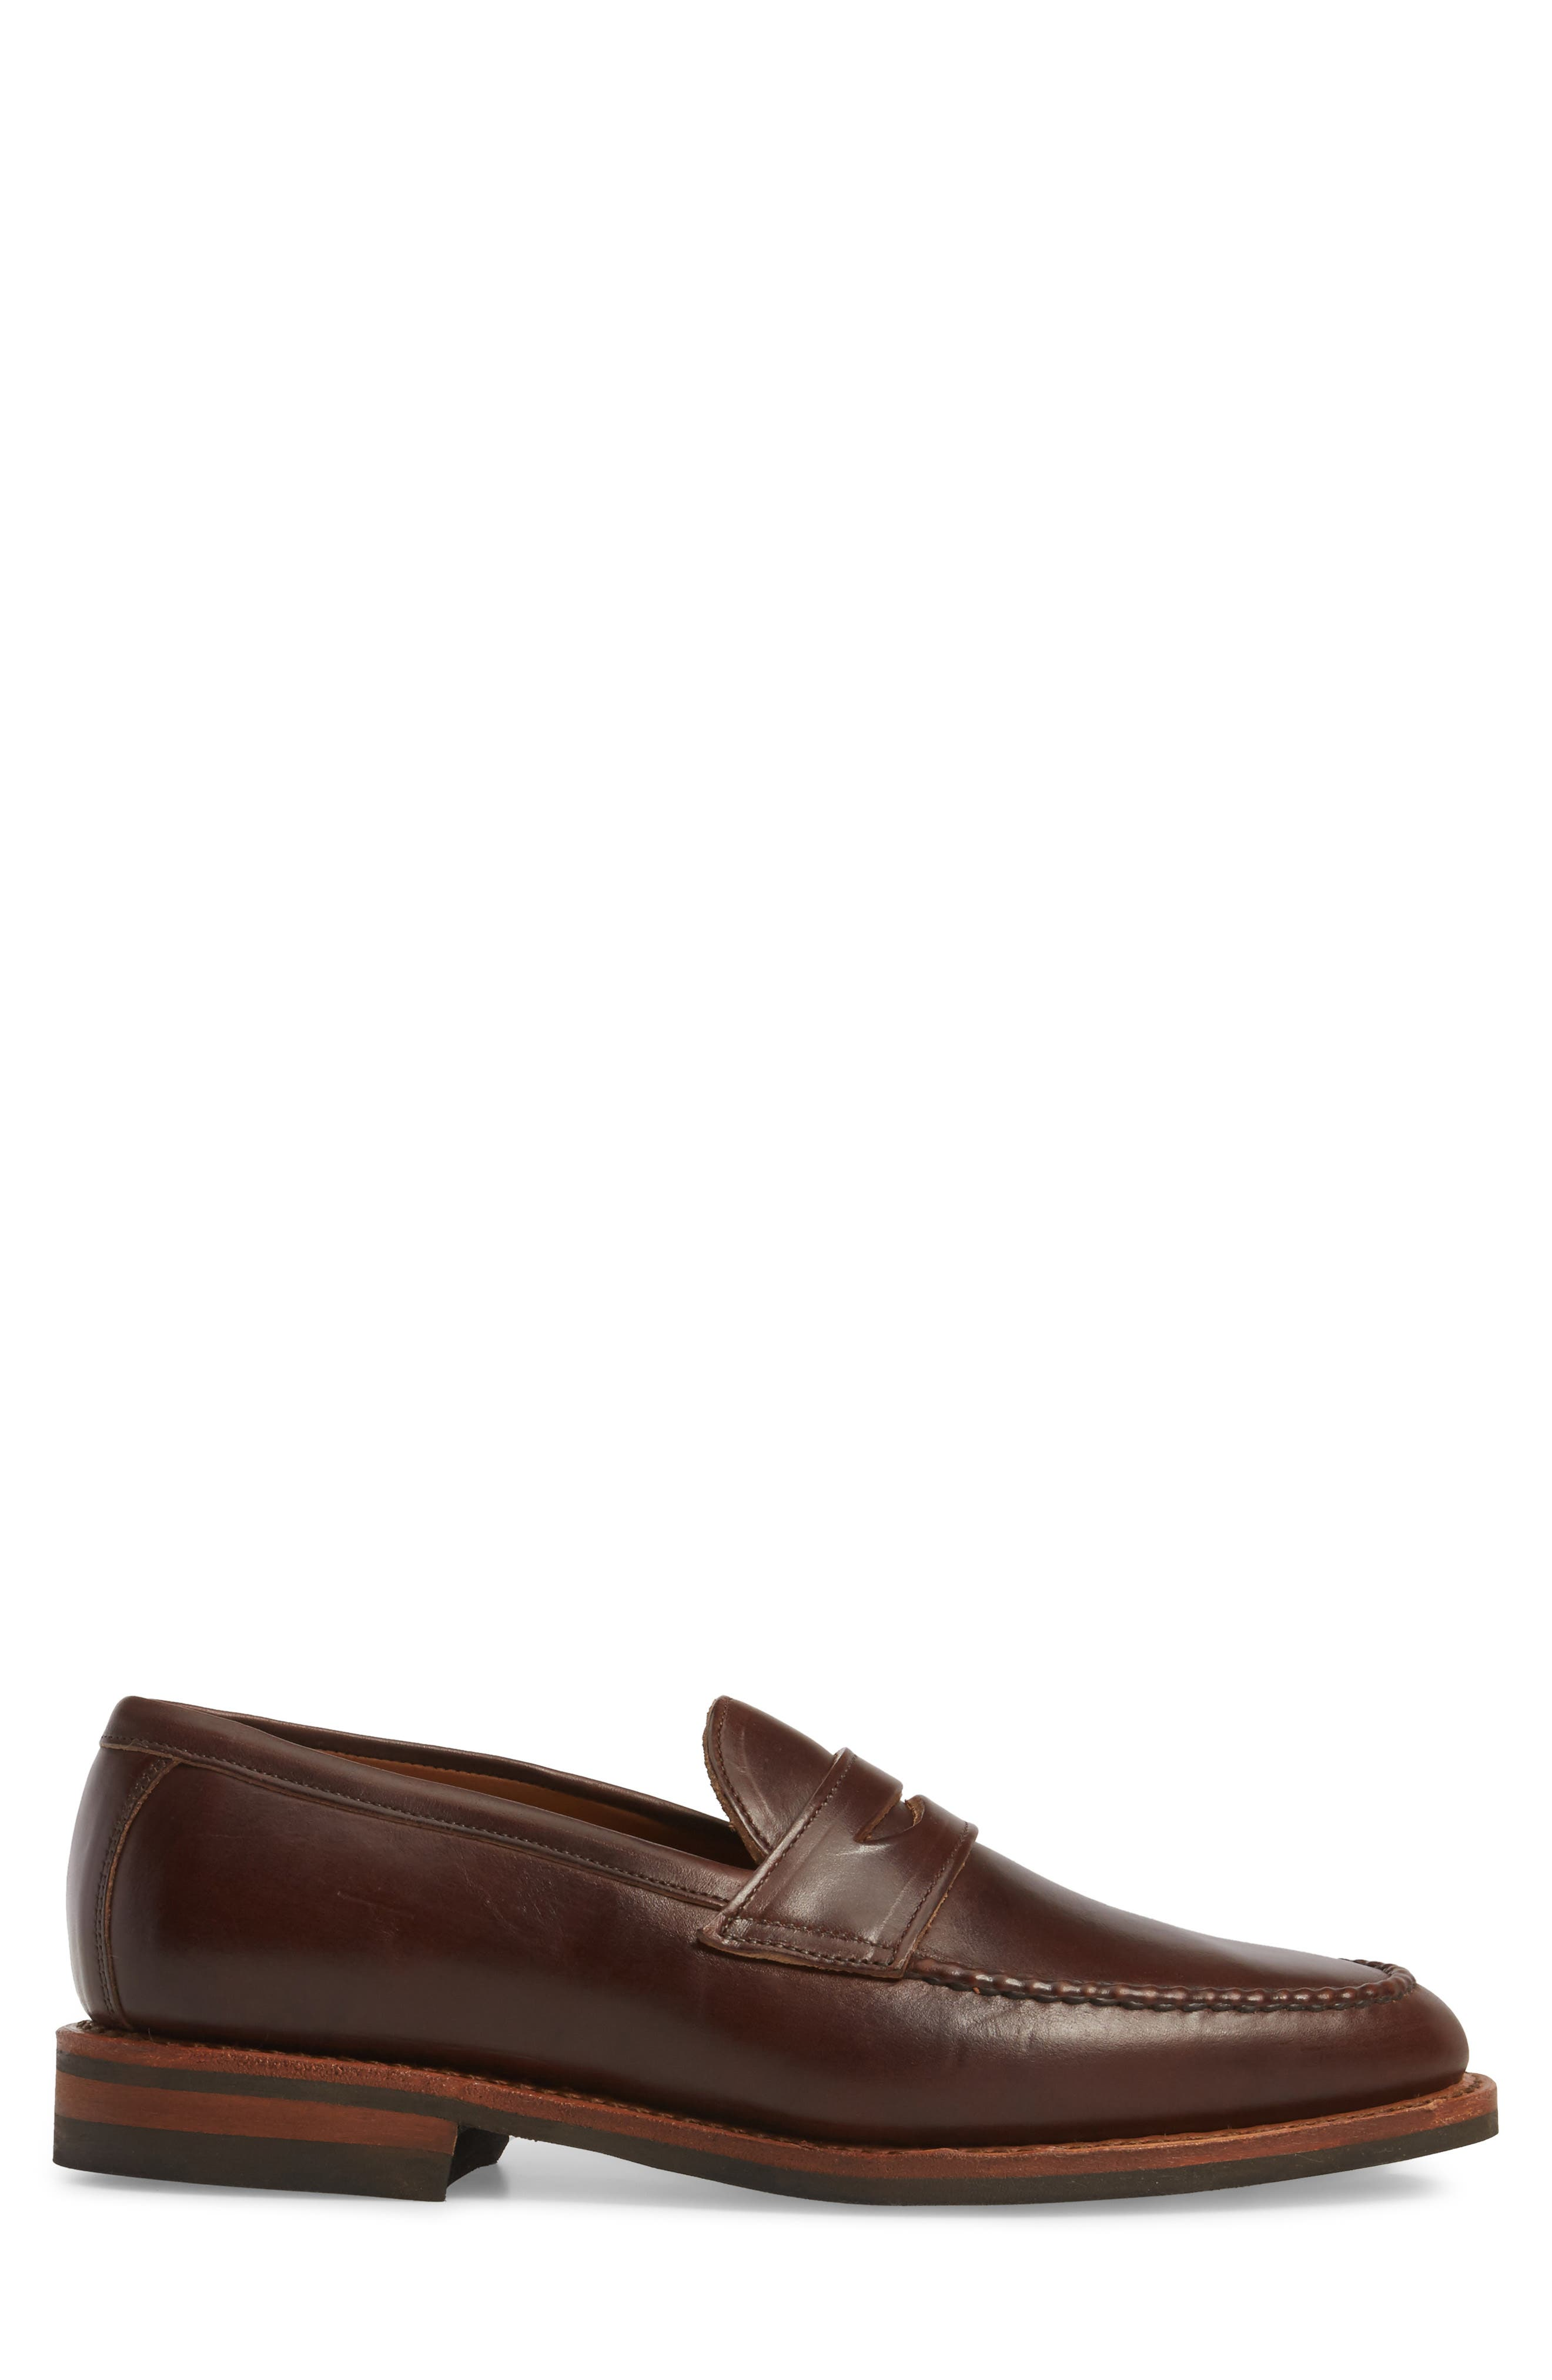 Alternate Image 3  - Allen Edmonds Addison Penny Loafer (Men)